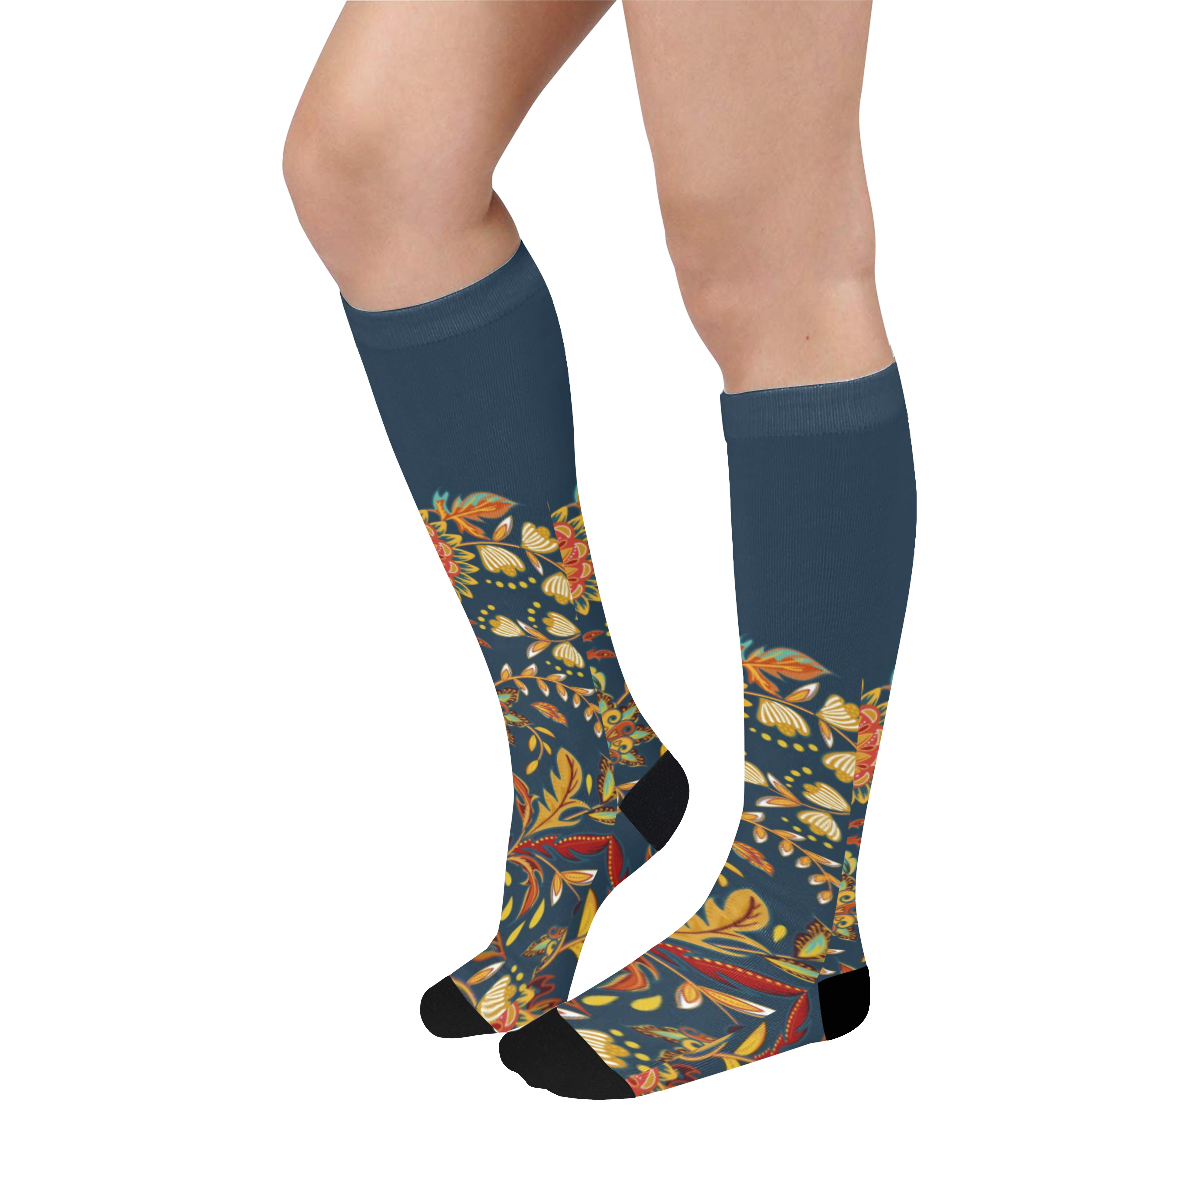 Over-The-Calf Socks